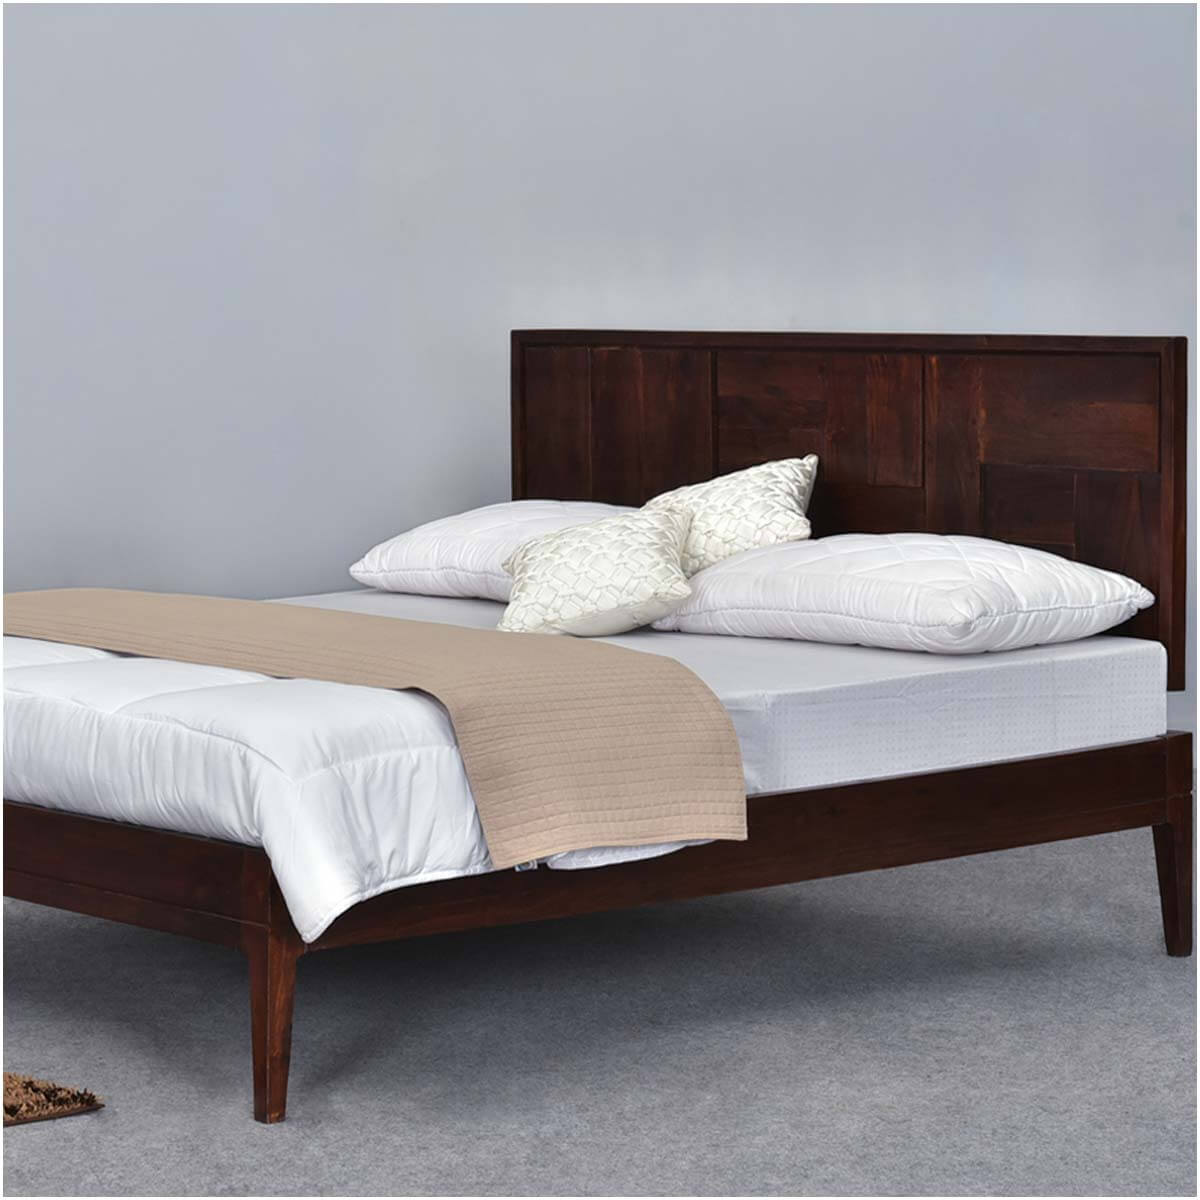 modern pioneer solid wood california king size platform bed frame. Black Bedroom Furniture Sets. Home Design Ideas